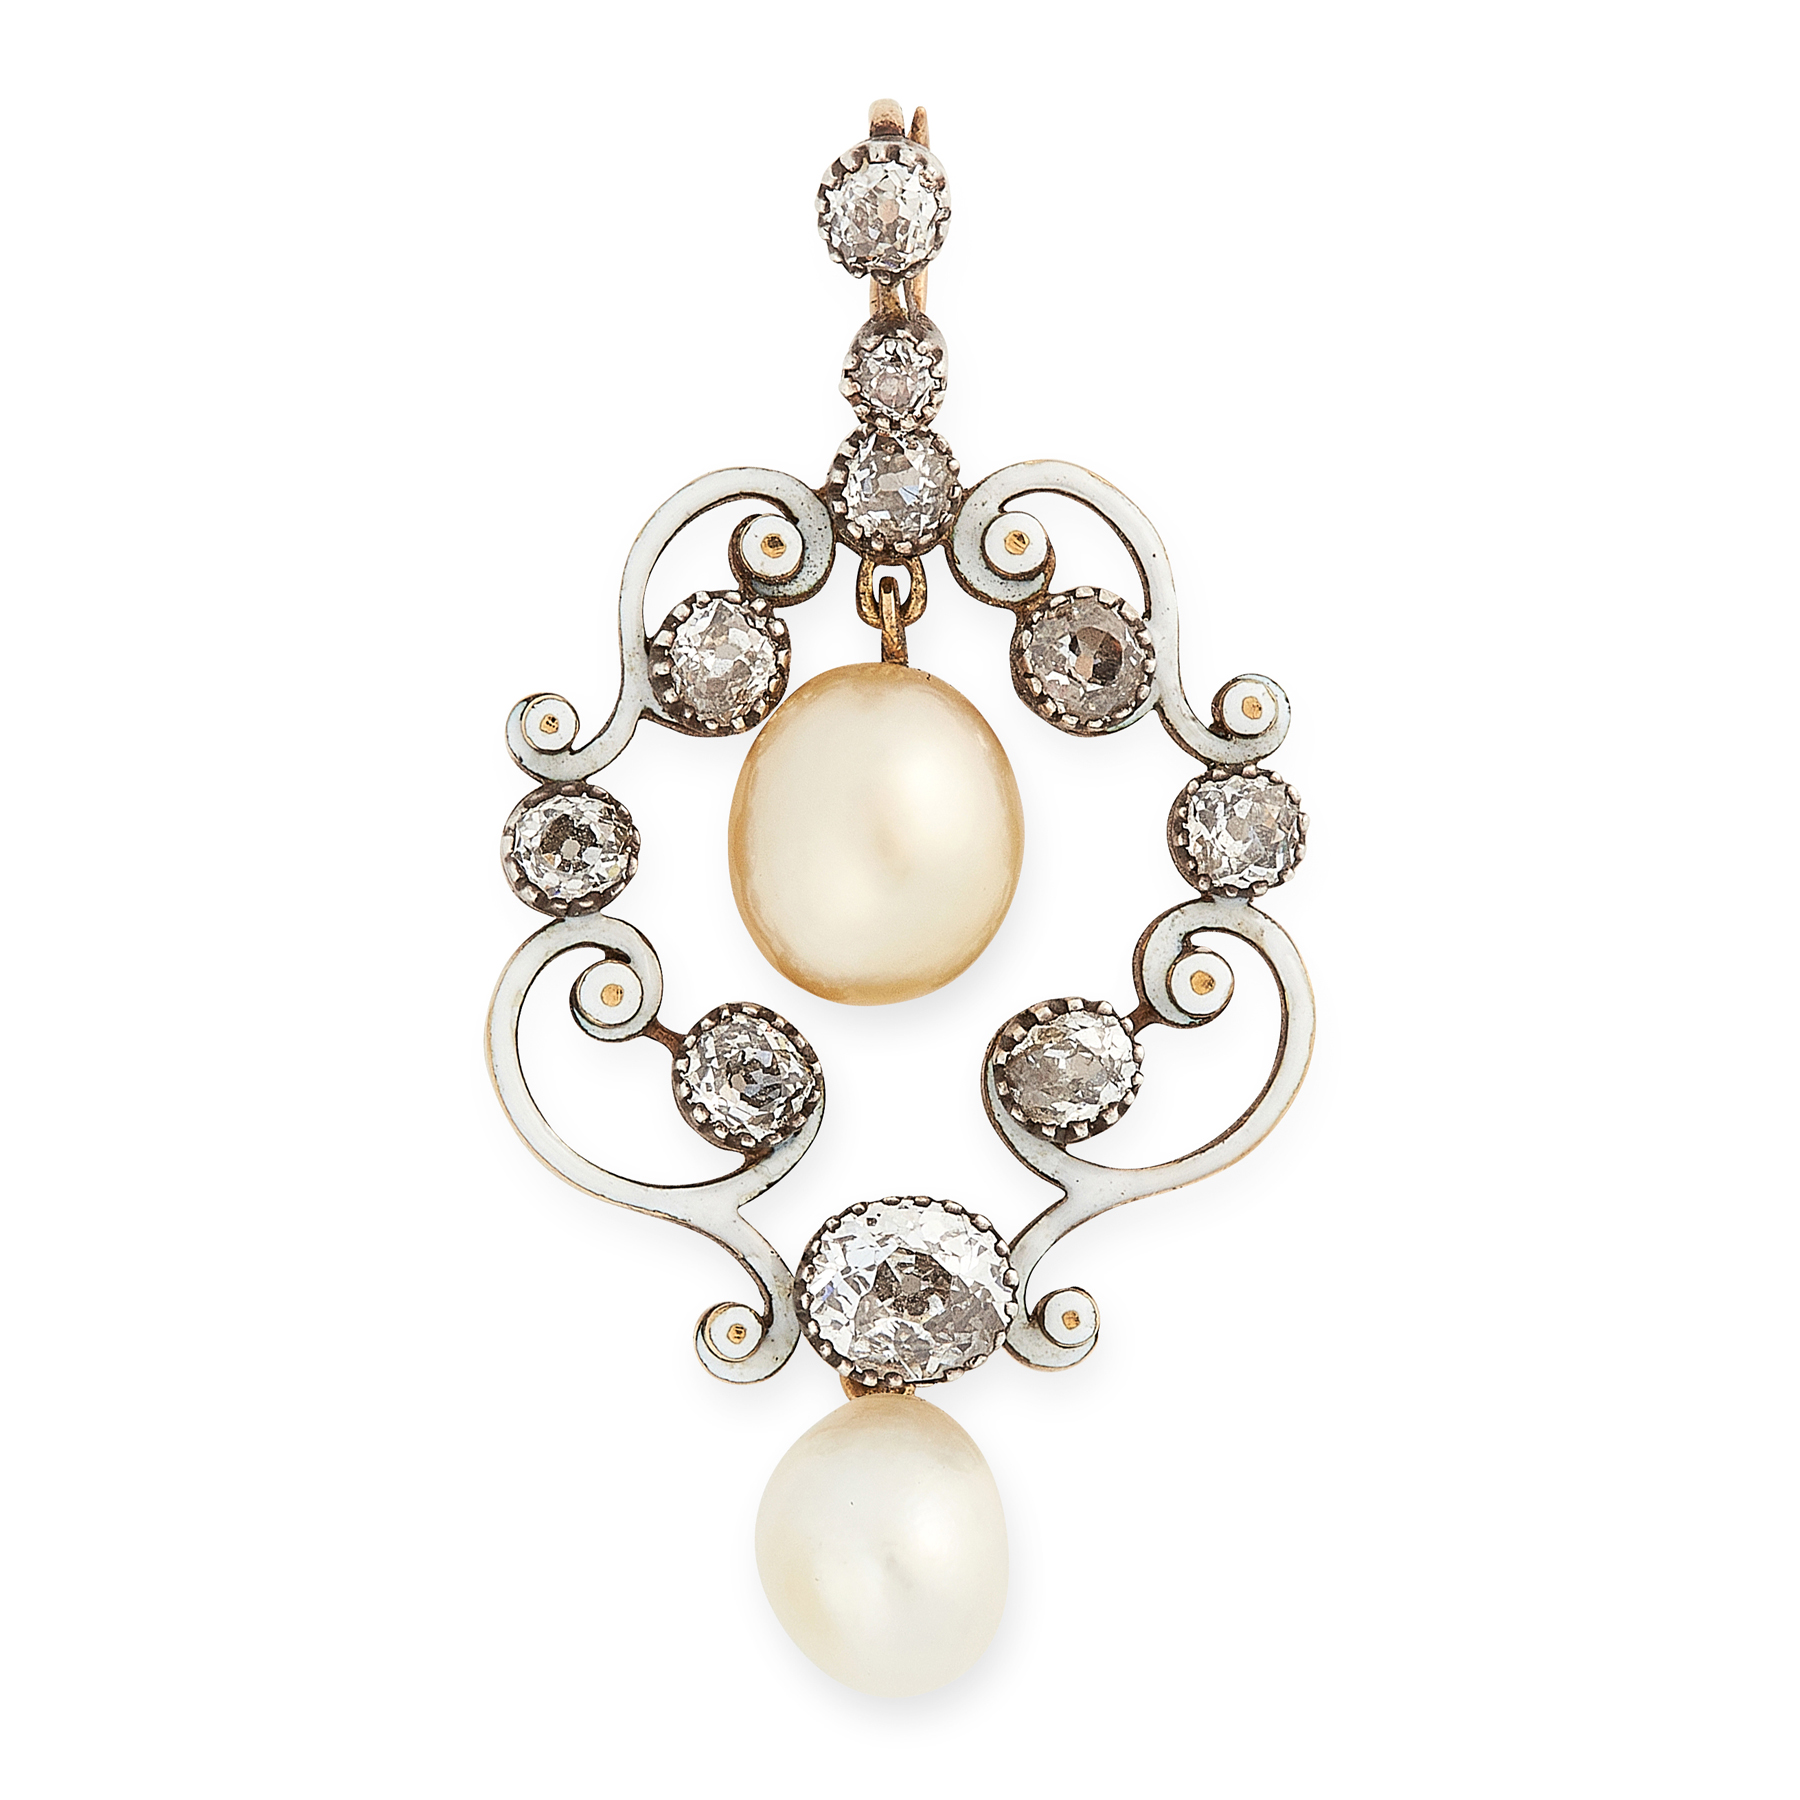 AN ANTIQUE NATURAL PEARL, DIAMOND AND ENAMEL PENDANT in yellow gold and silver, set with two natural